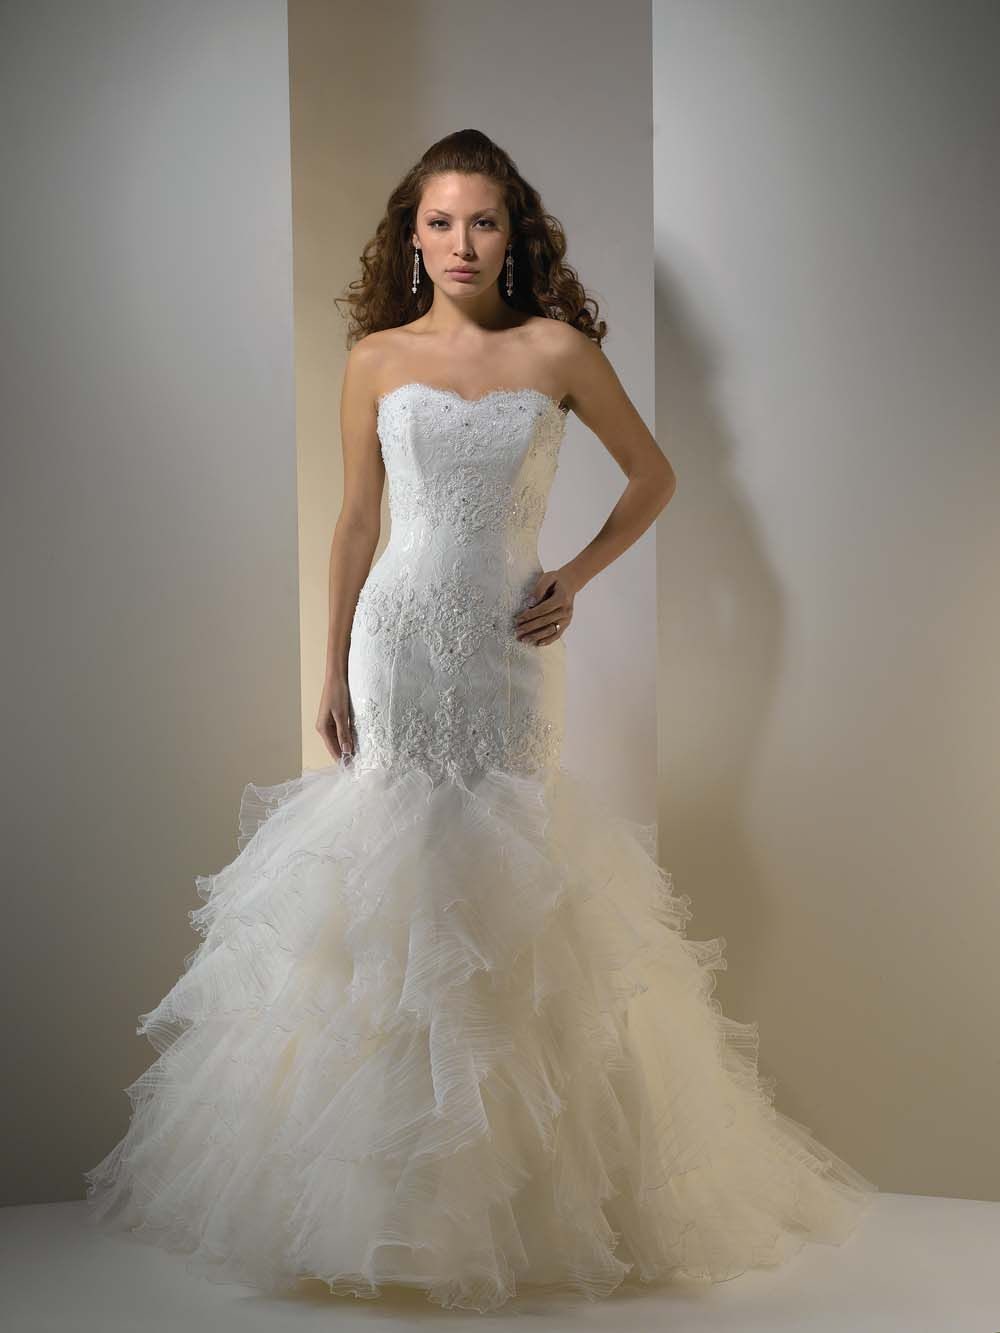 Styles of wedding dresses  House of Brides  Wedding Dress  wedding  Pinterest  Wedding